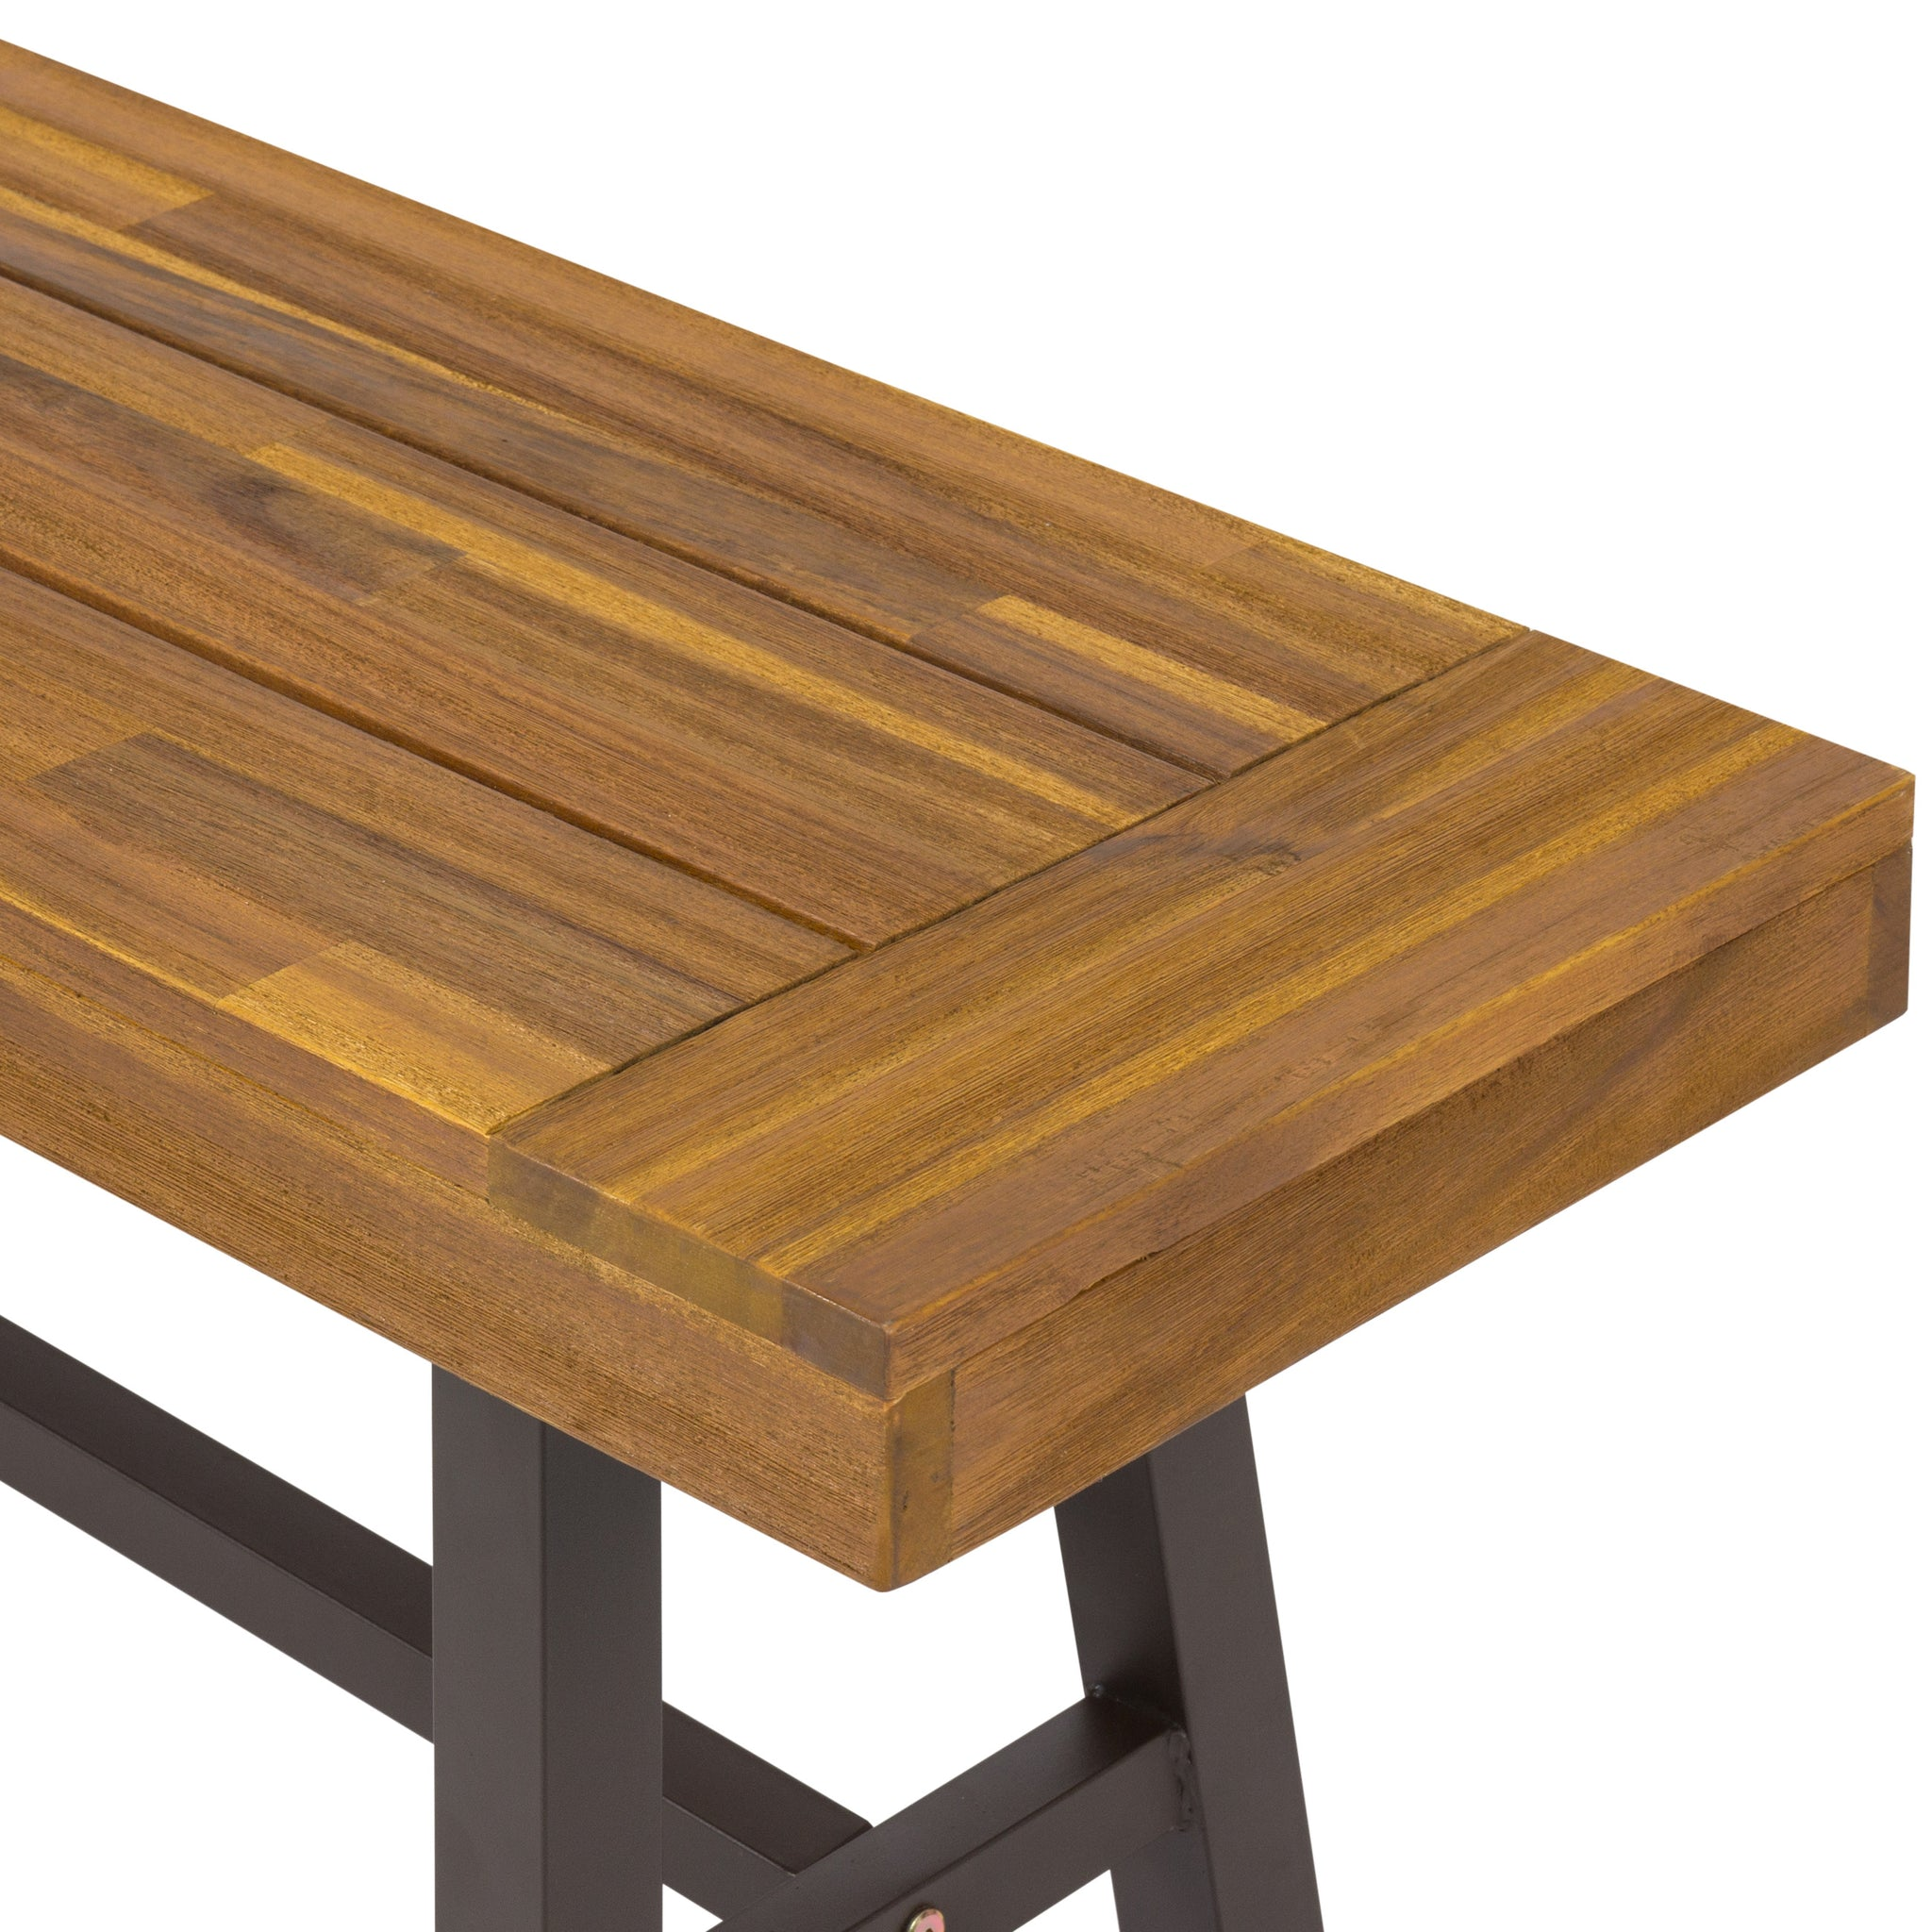 3 Piece Acacia Wood Picnic Dining Table – Best Choice Products